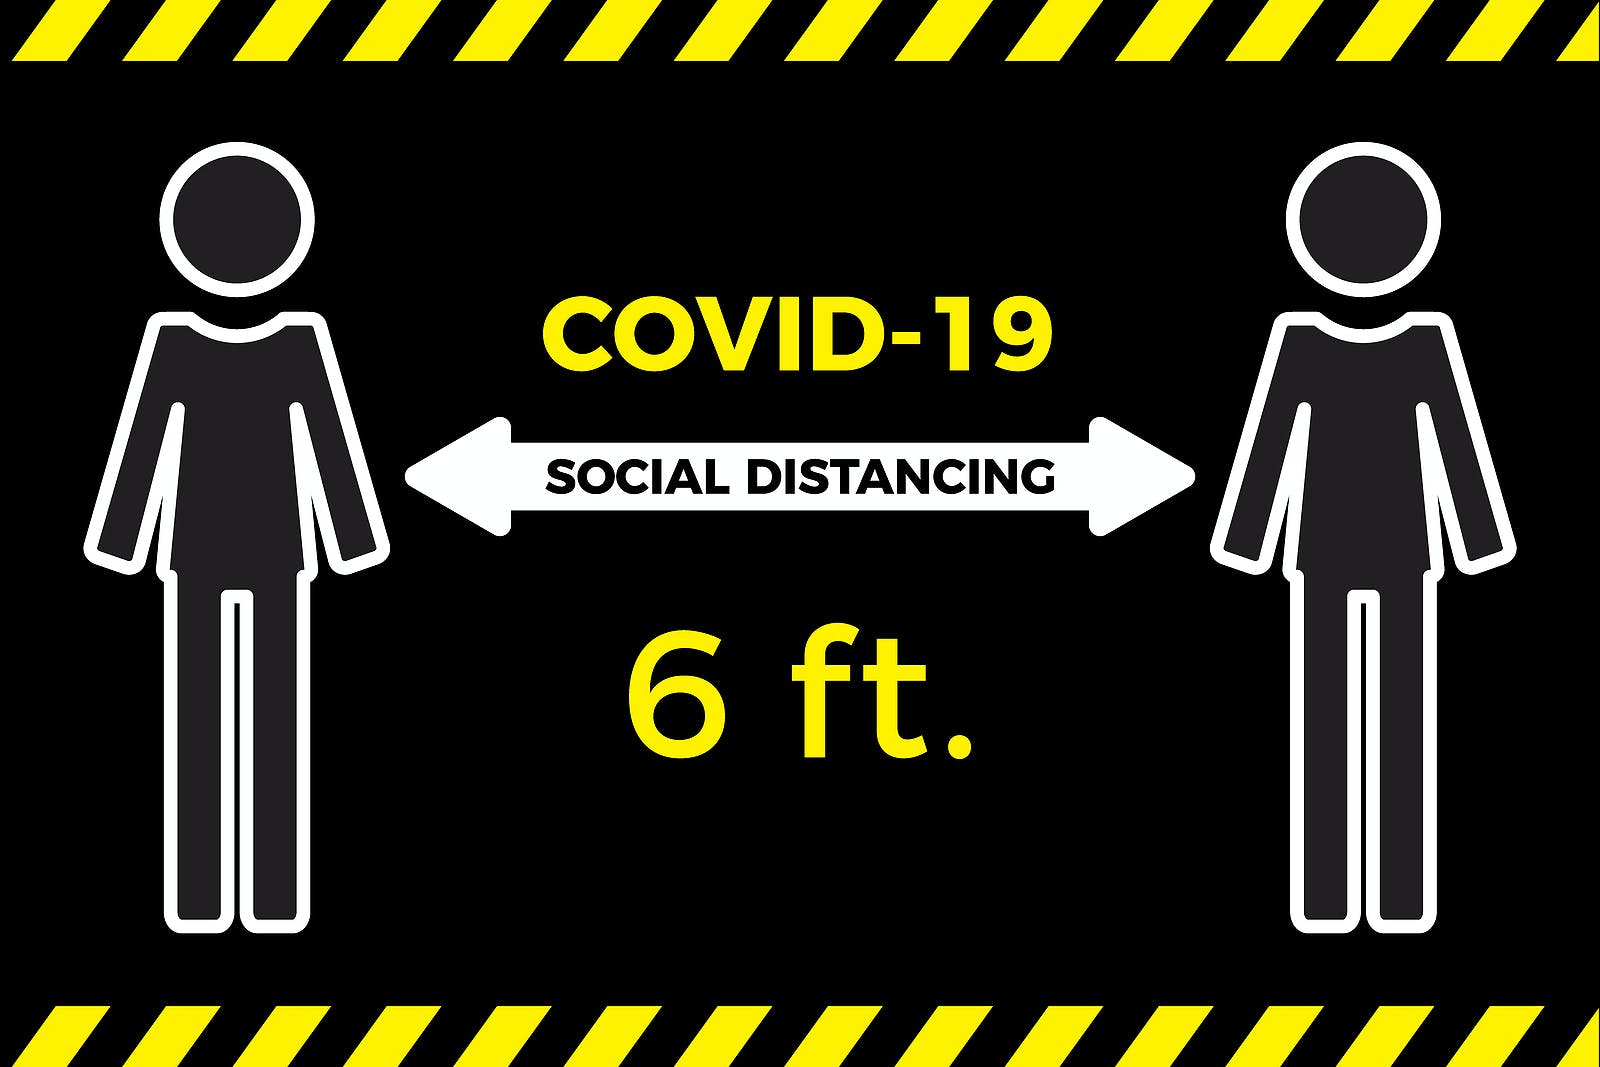 signage for six feet distance